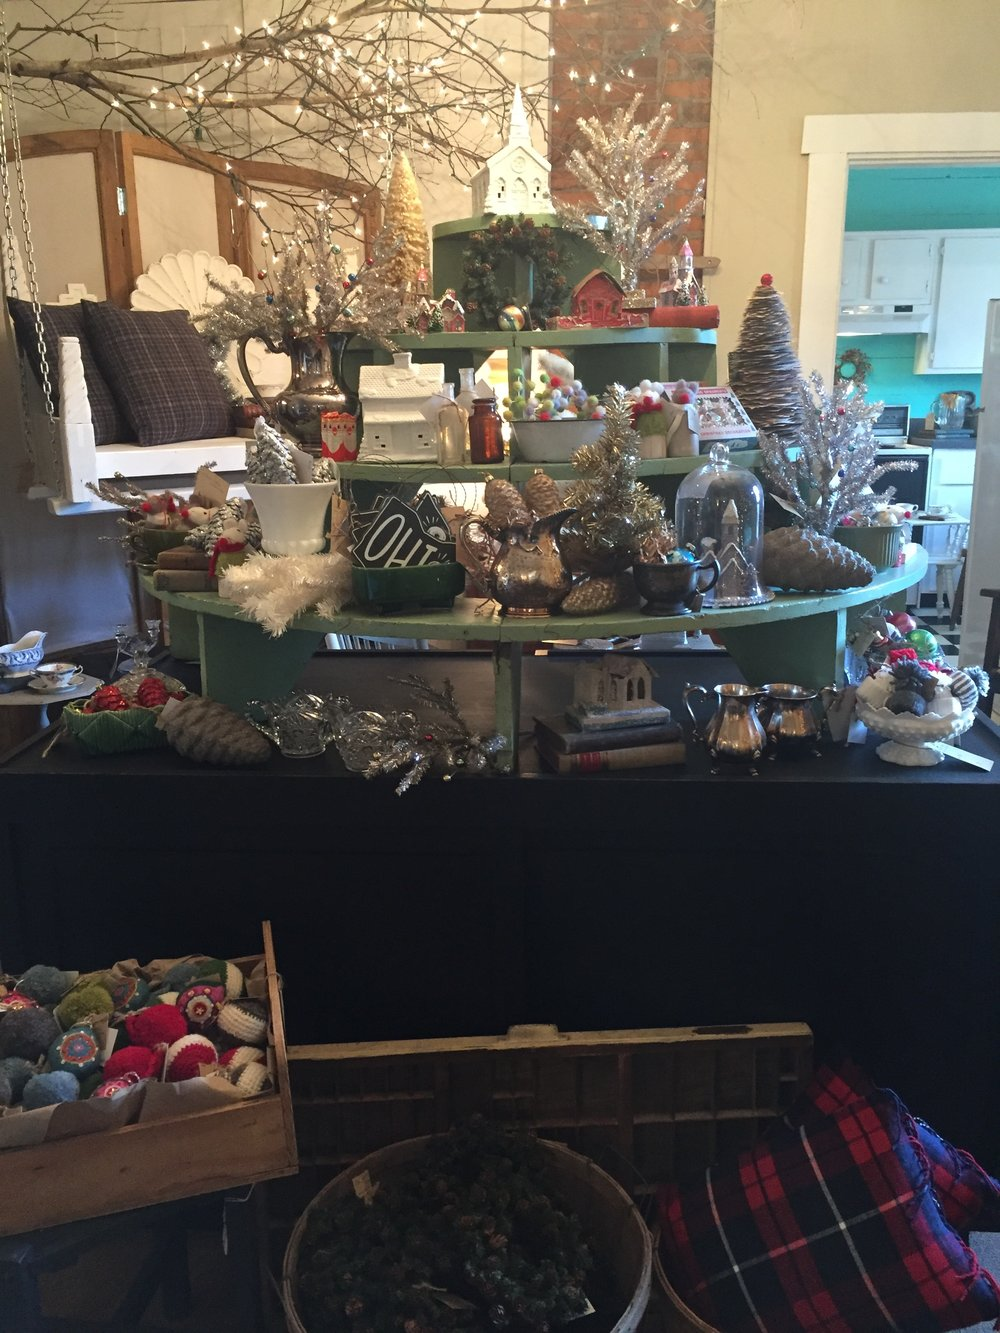 What a great display! This gives customers a great look at many of our Christmas items, perfect for gifts!